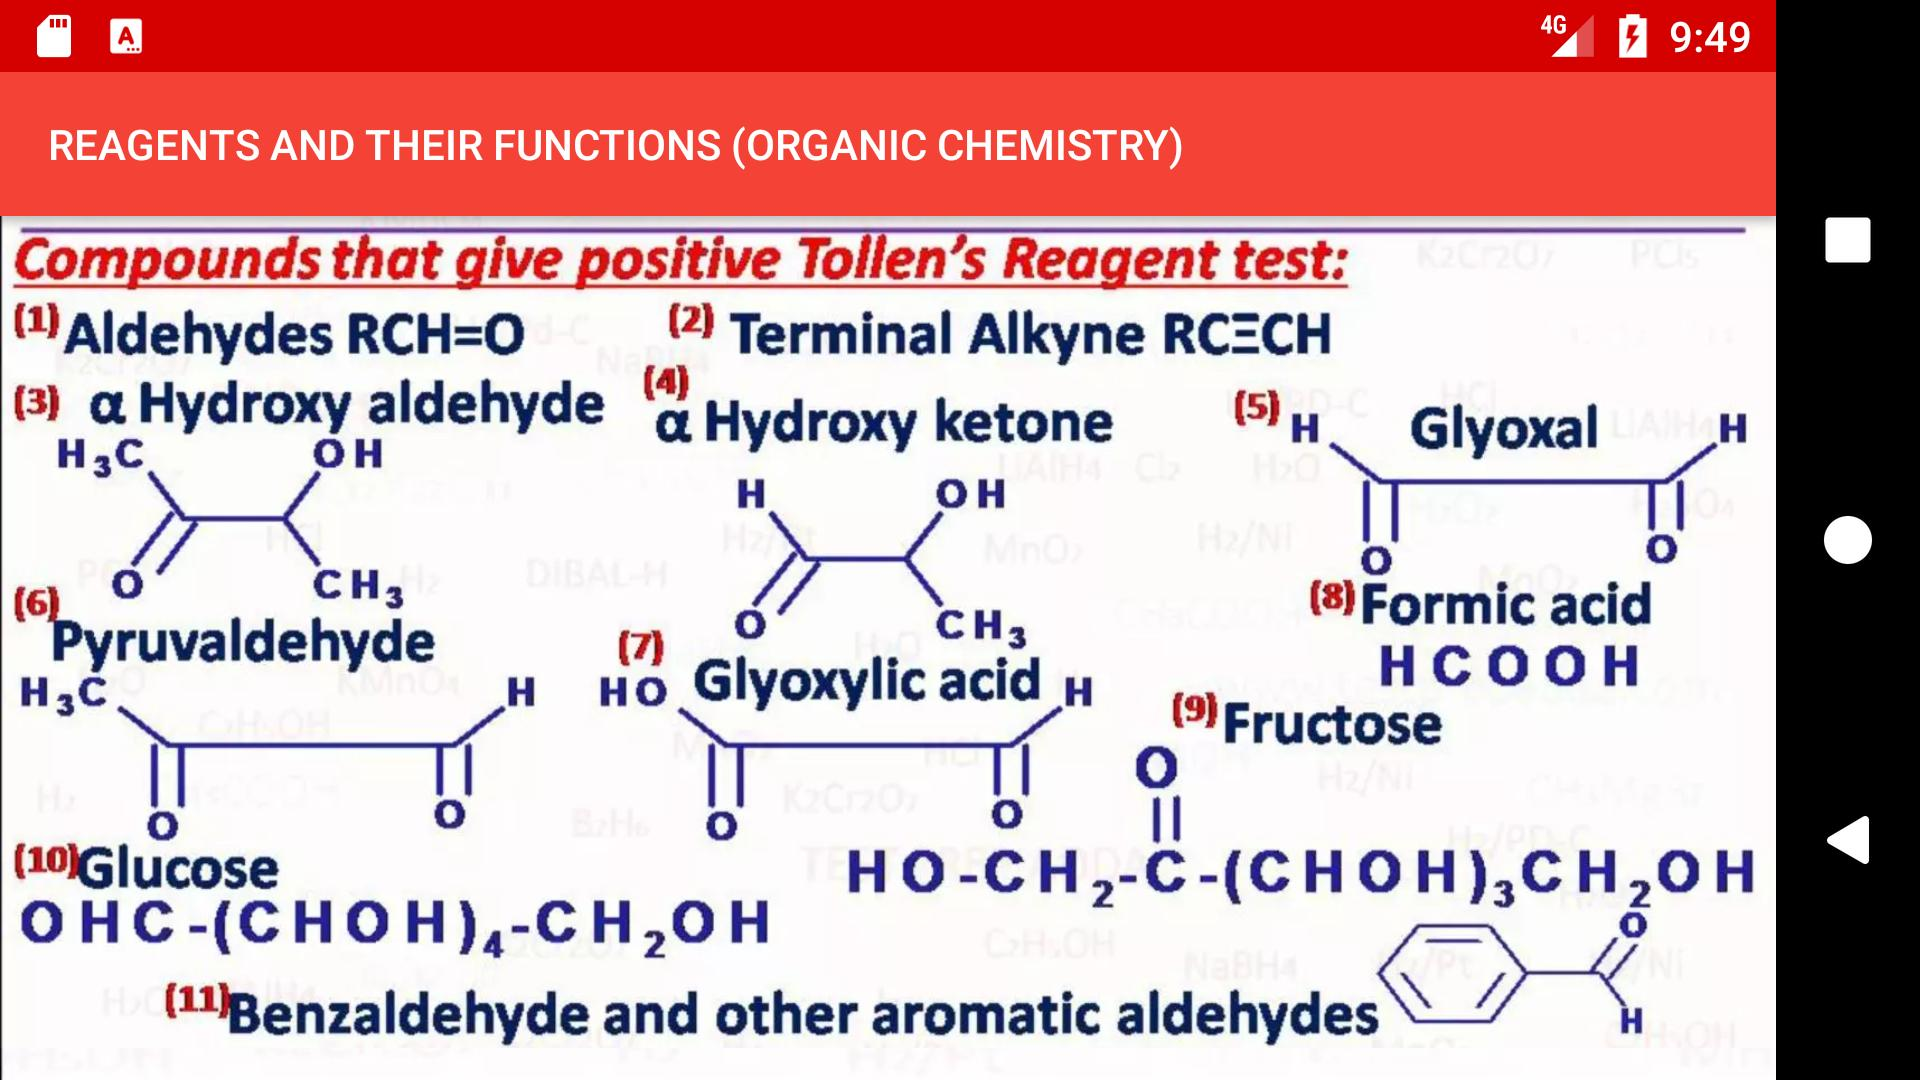 REAGENTS AND THEIR FUNCTIONS ORGANIC CHEMISTRYFree for